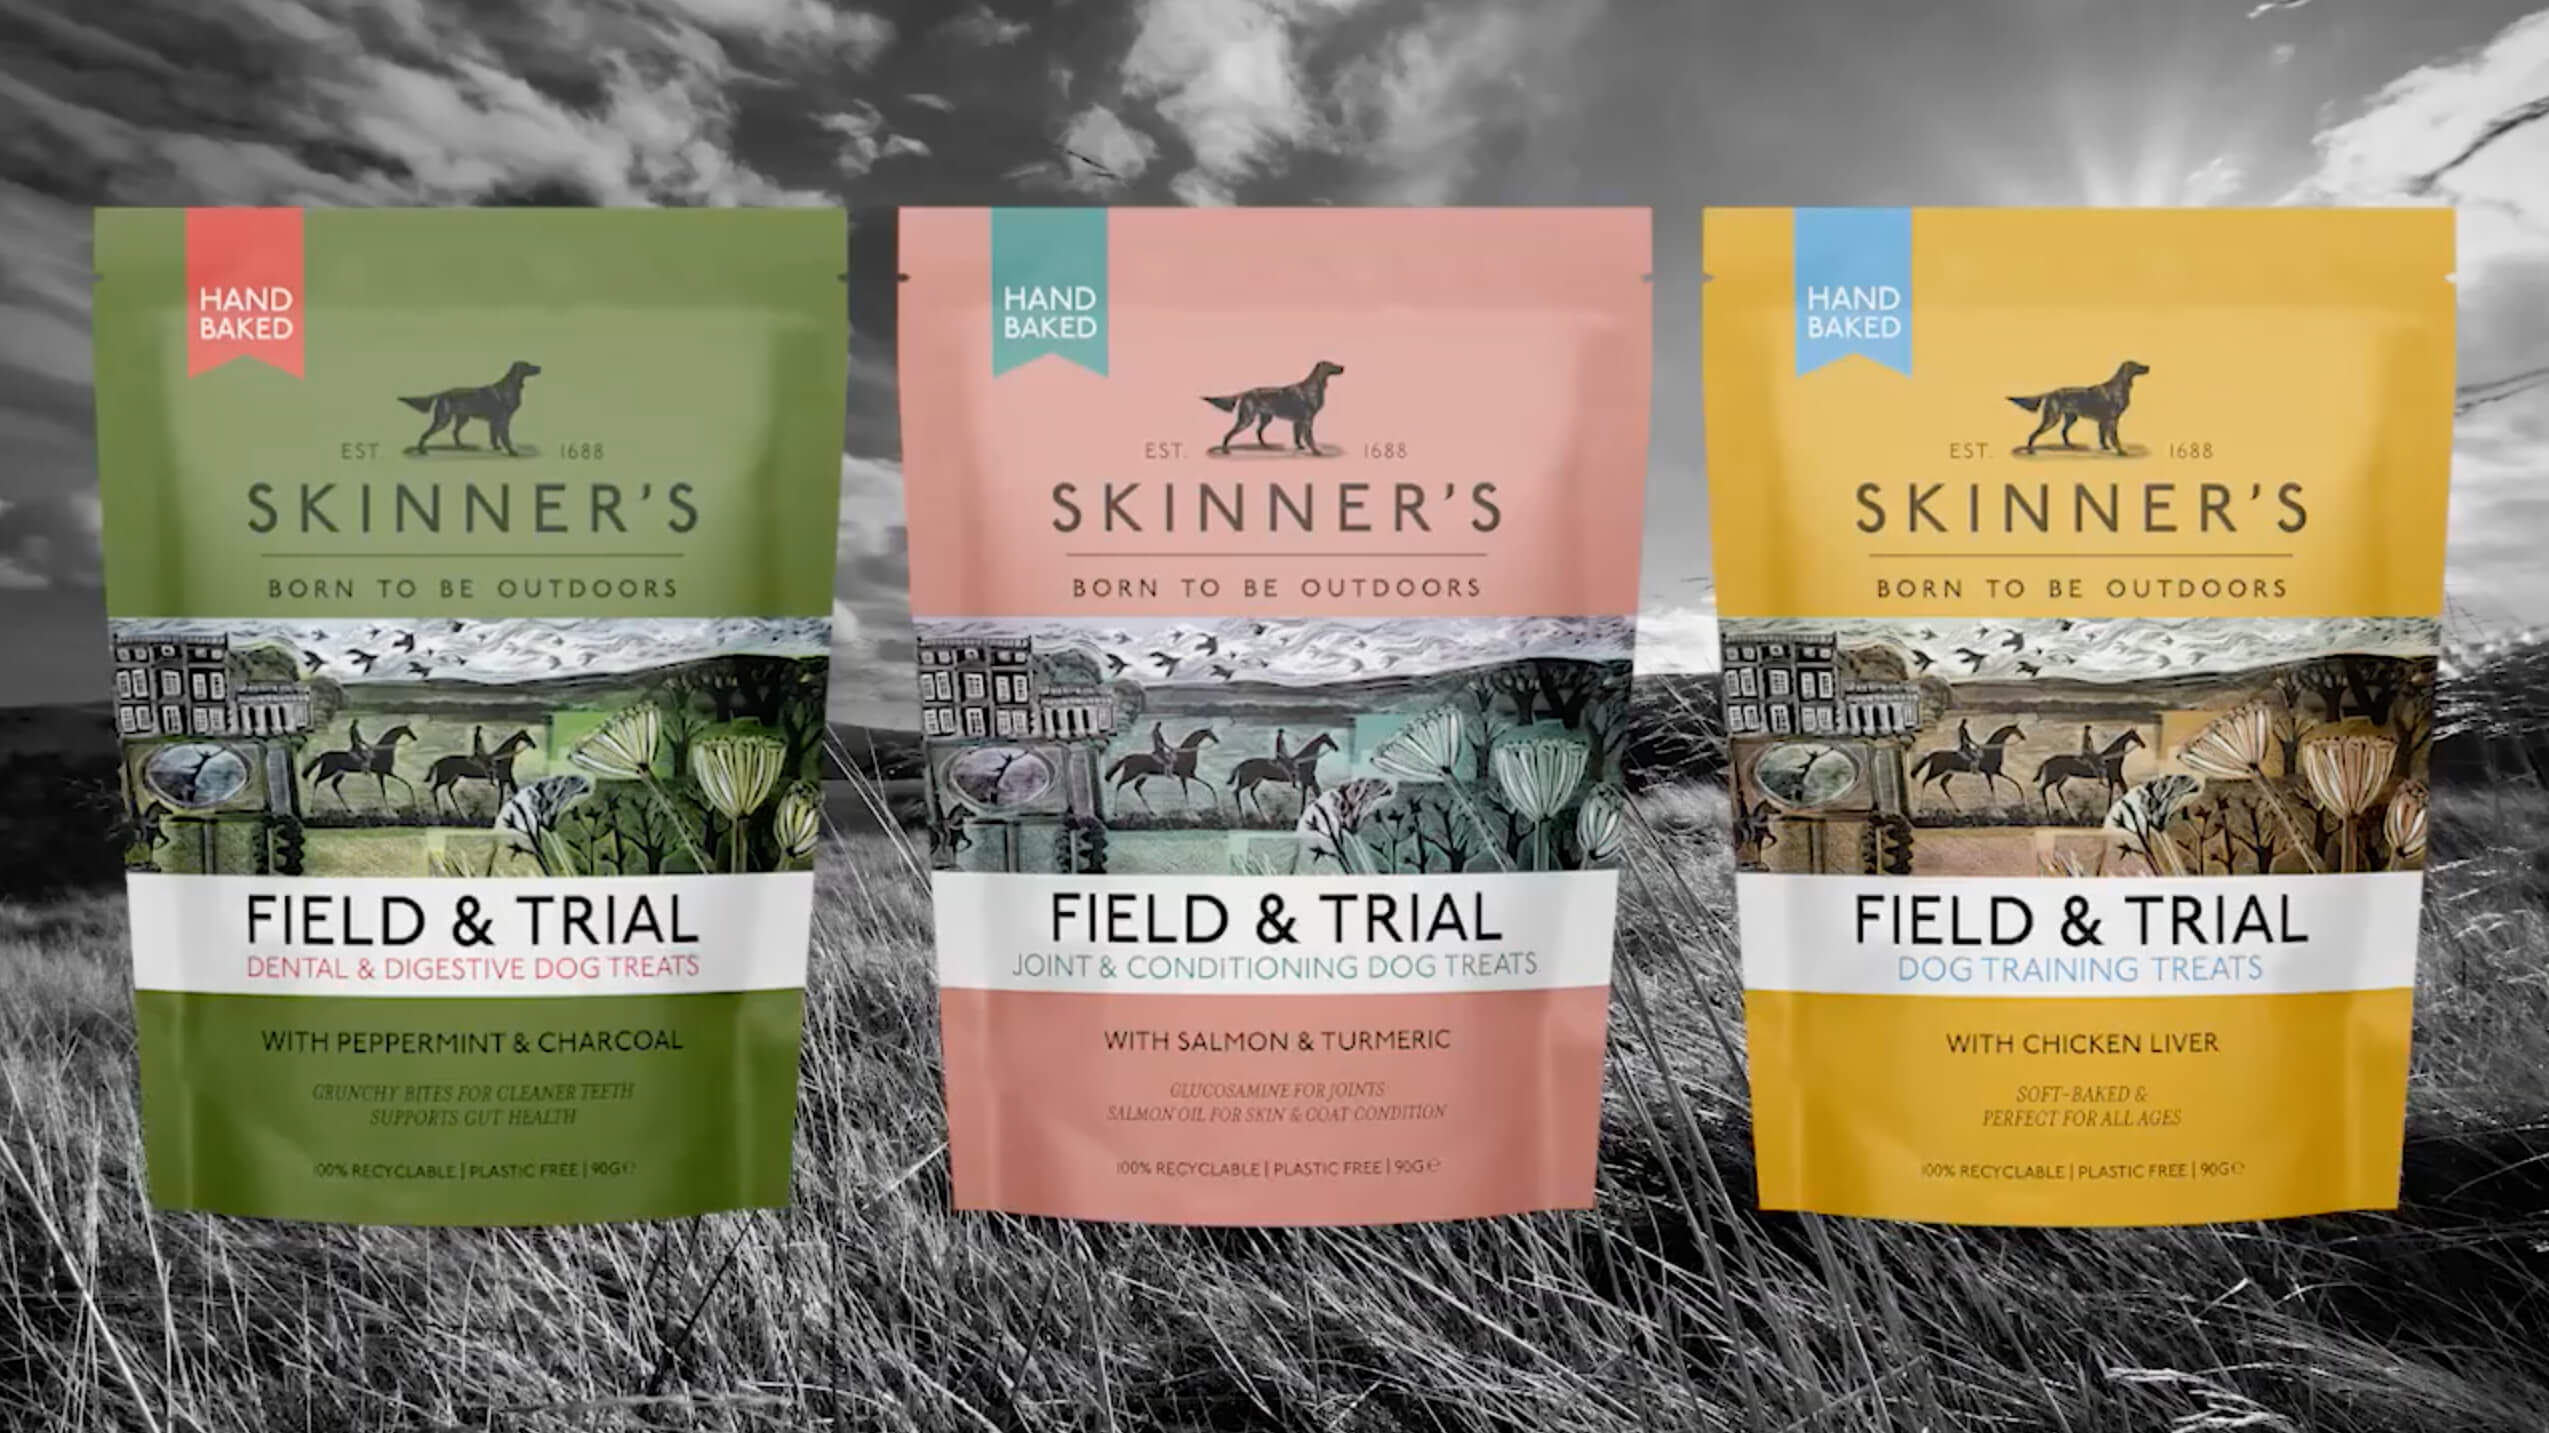 New Skinners dog food packaging illustrated by Angela Harding